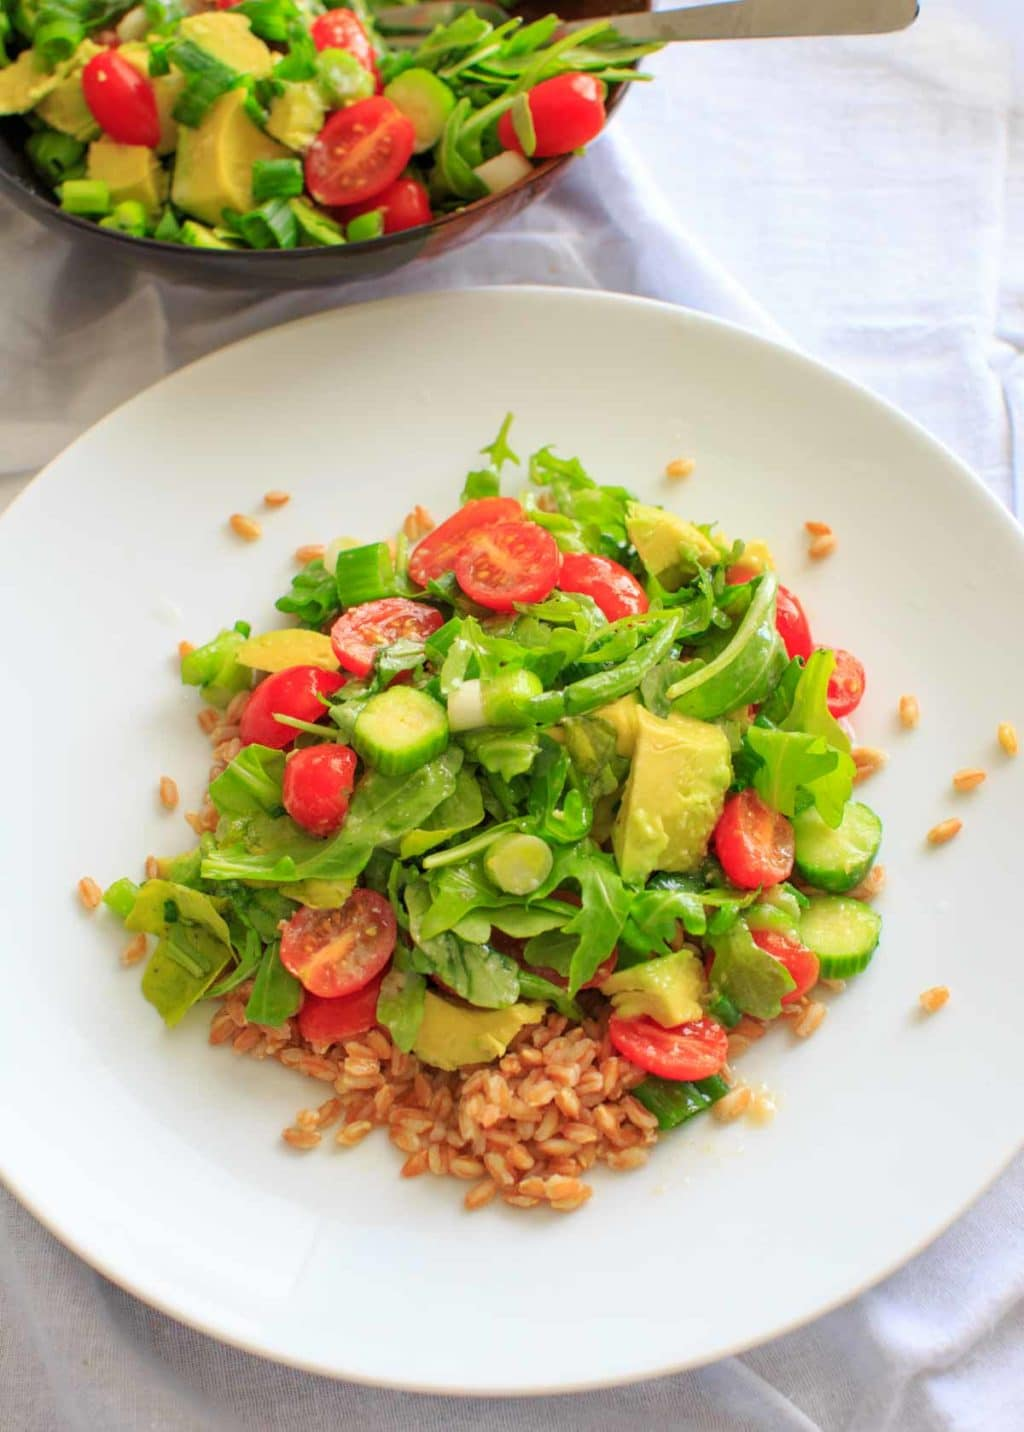 This cucumber avocado salad with miso vinaigrette is full of greens and veggies that can be eaten by itself (for gluten-free) or over a bed of farro for a heartier meal. Either way is a delicious vegan dish that is healthy and full of flavor!